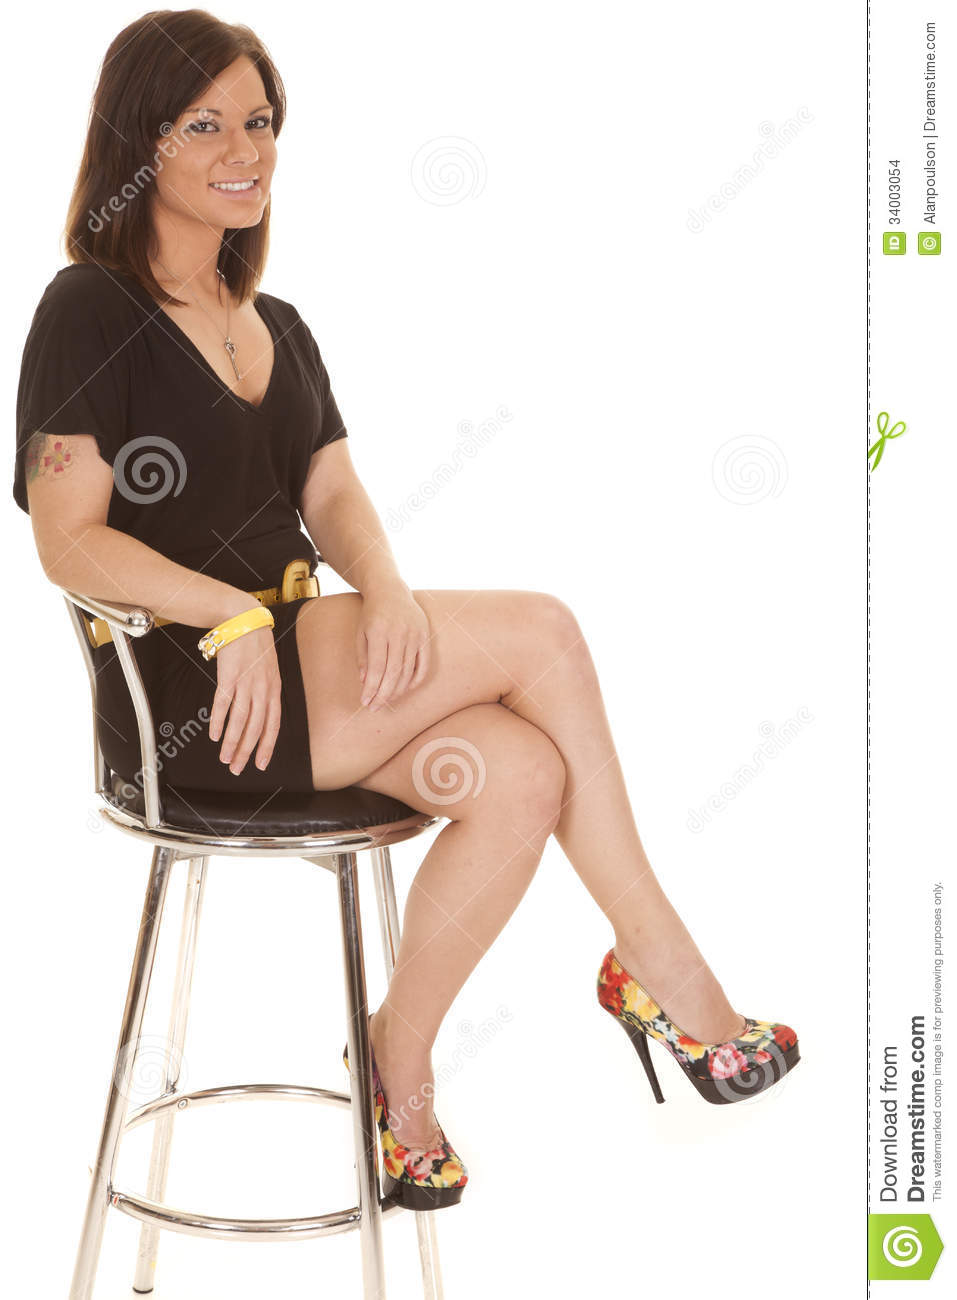 a woman is sitting in her A woman is sitting on the spinning seat of a piano stool with her arms folded what happens to her (a) angular velocity and (b) angular momentum when she extends her arms outward justify your answers.